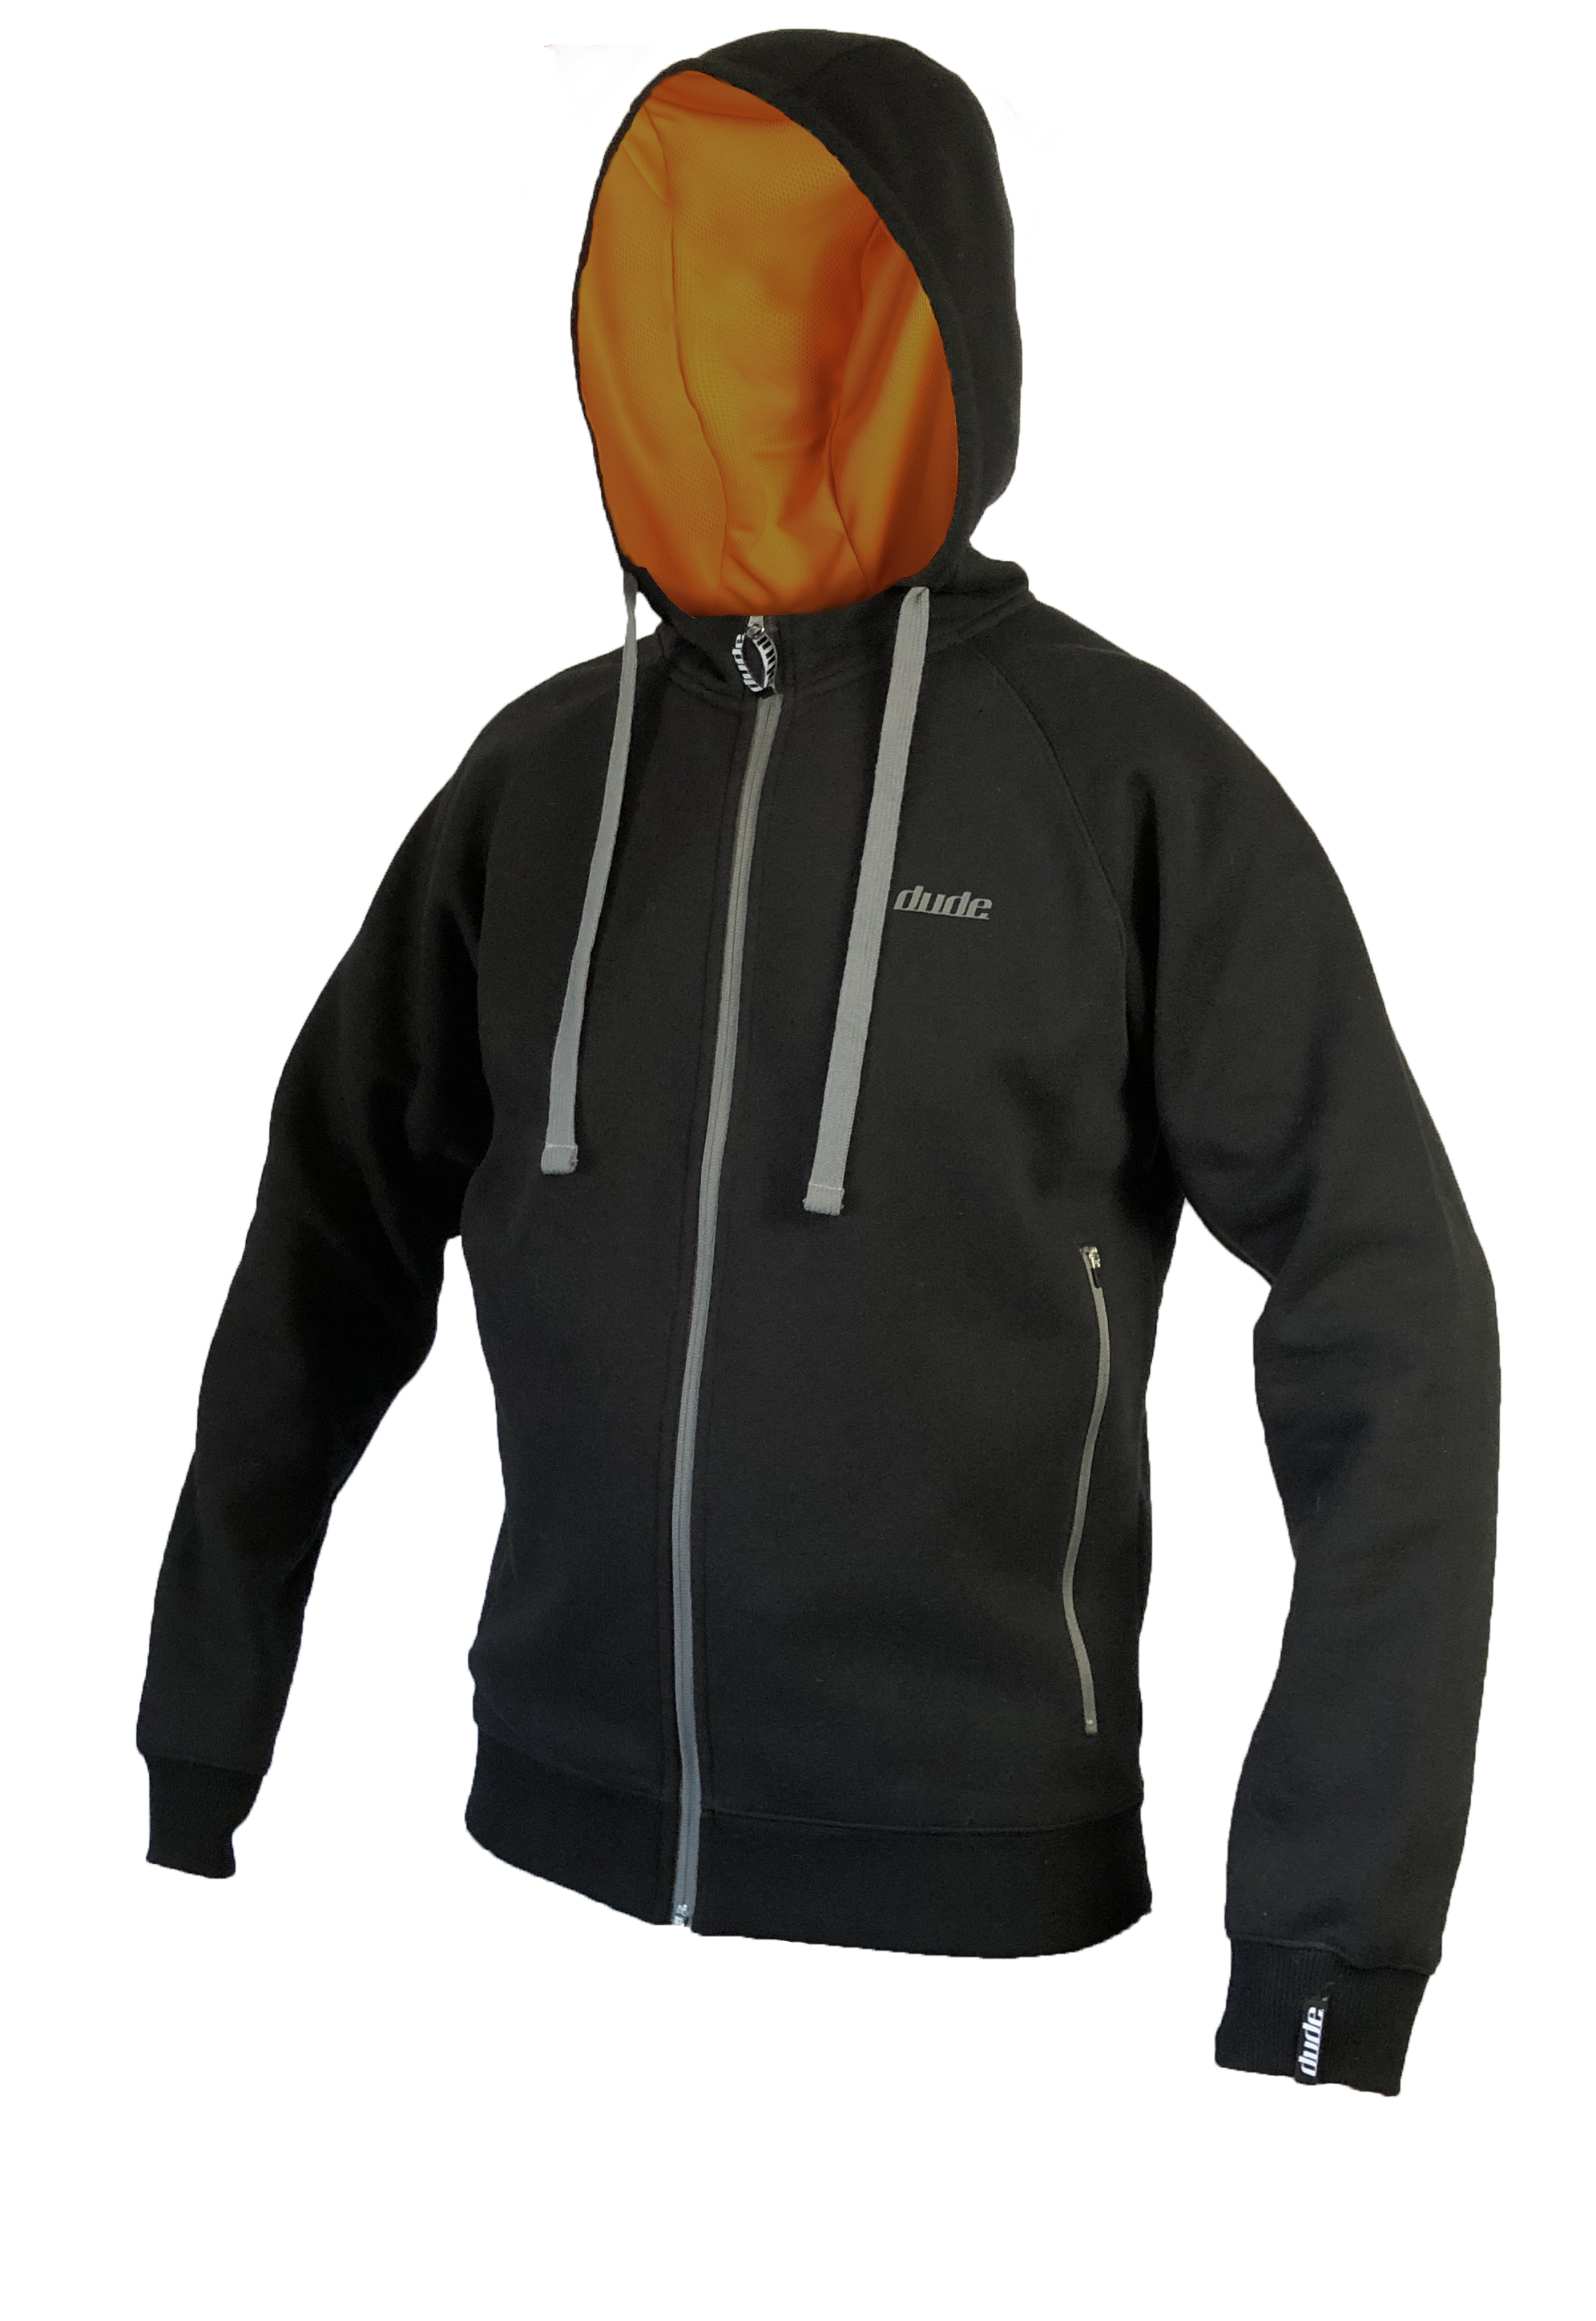 Hoodie lining png. Mens tech an image